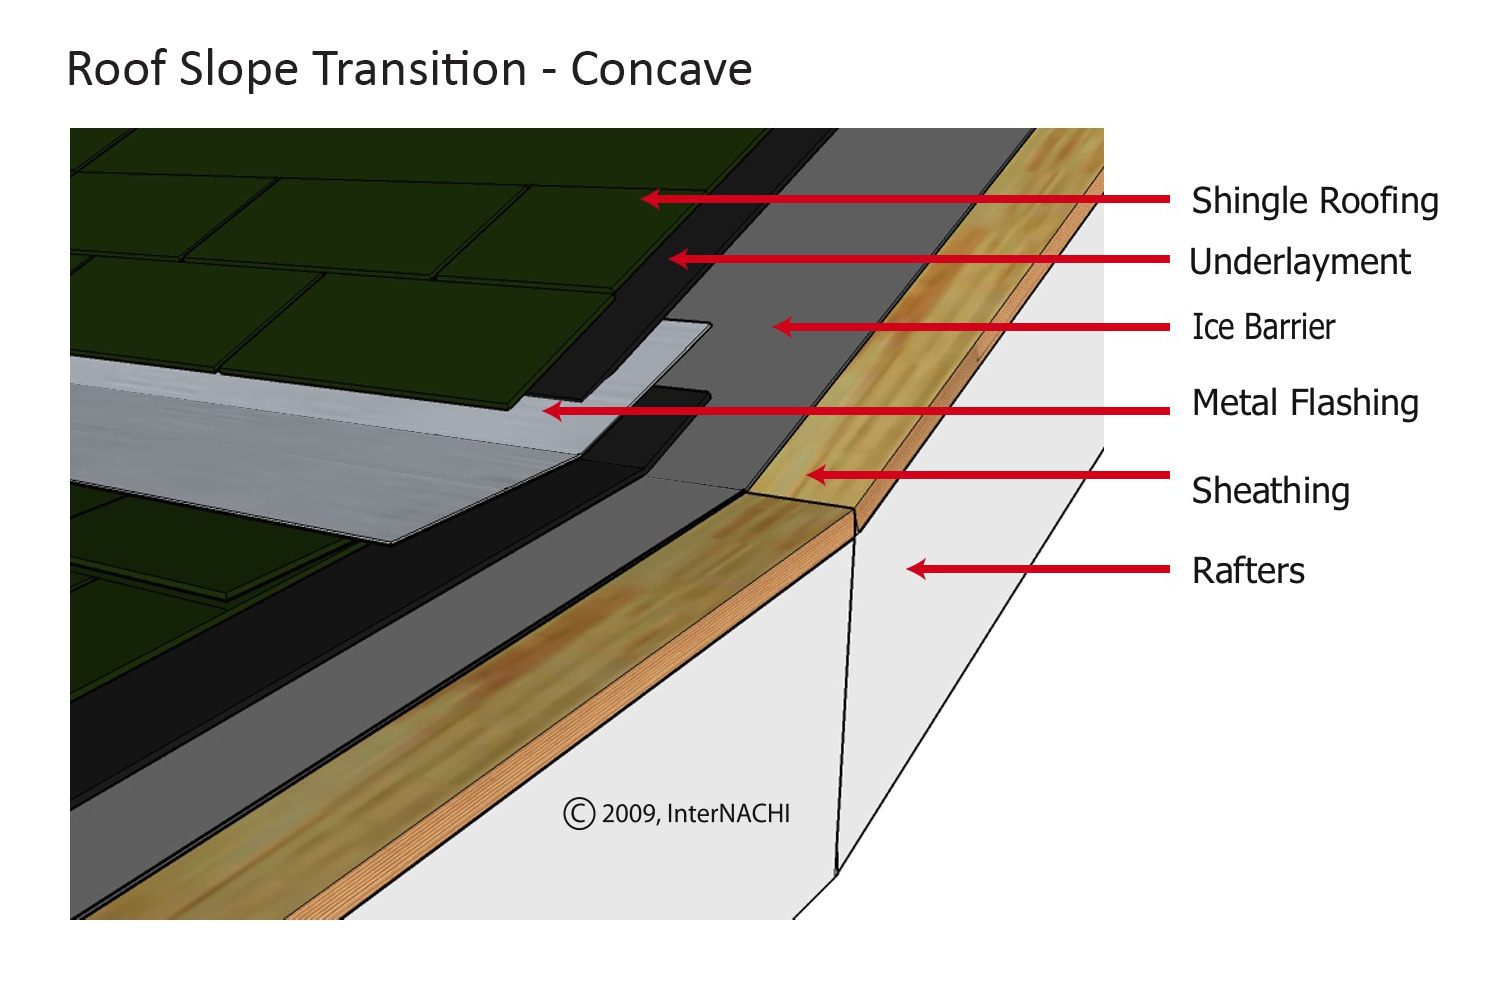 Roof pitch transition - concave.